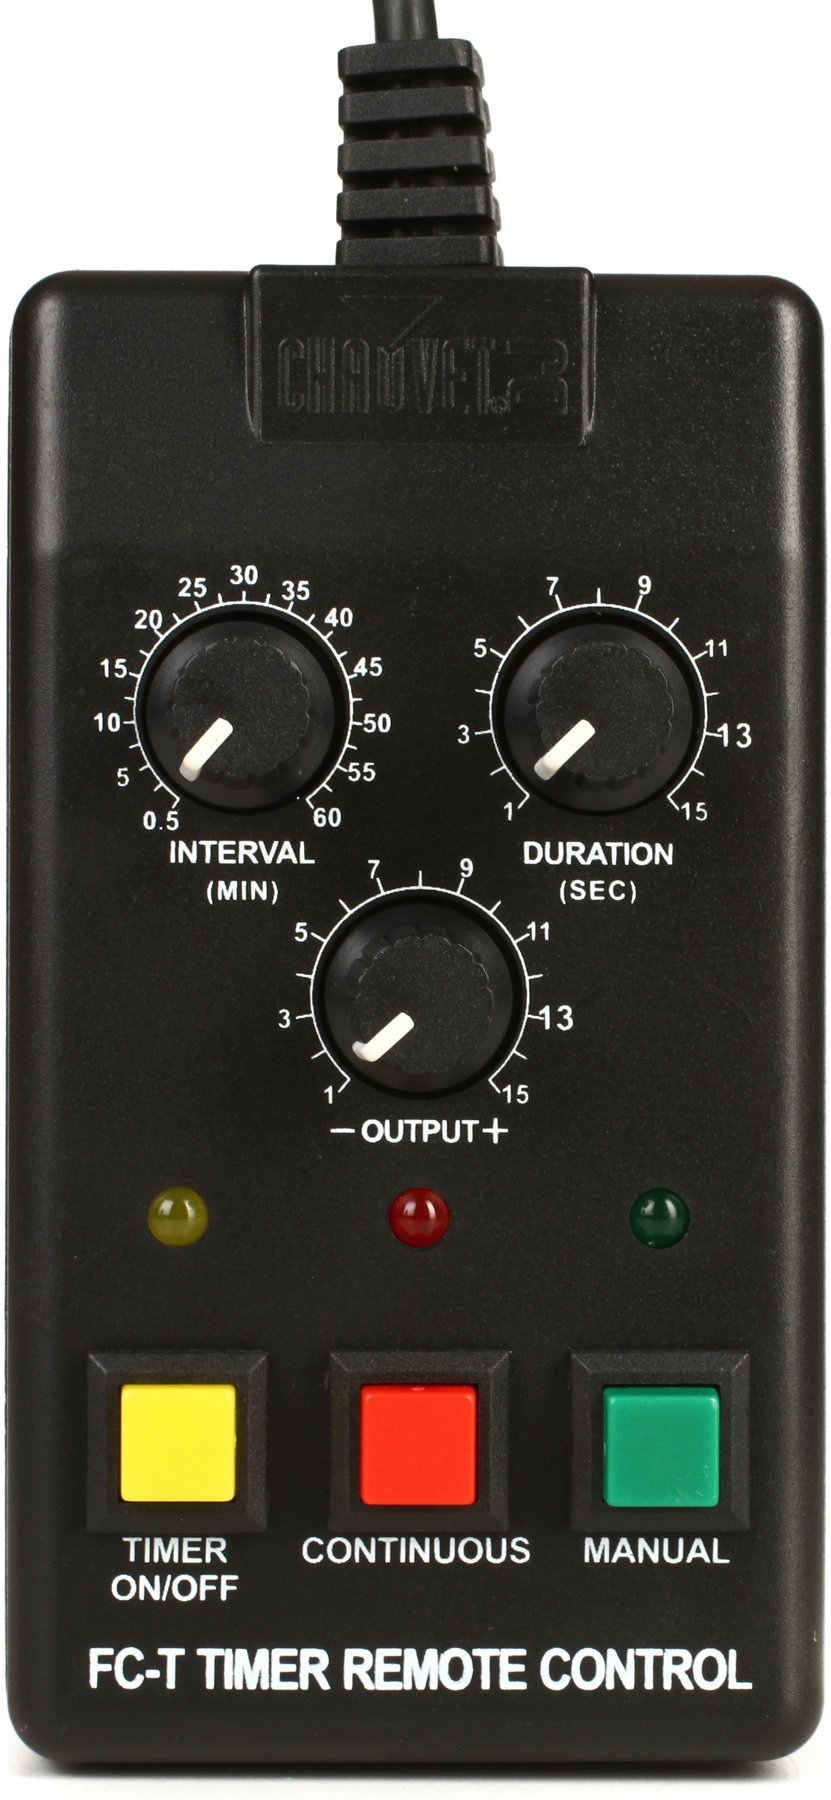 Chauvet Dj Fc T Timer Remote Control Sweetwater Amplifier Image 1